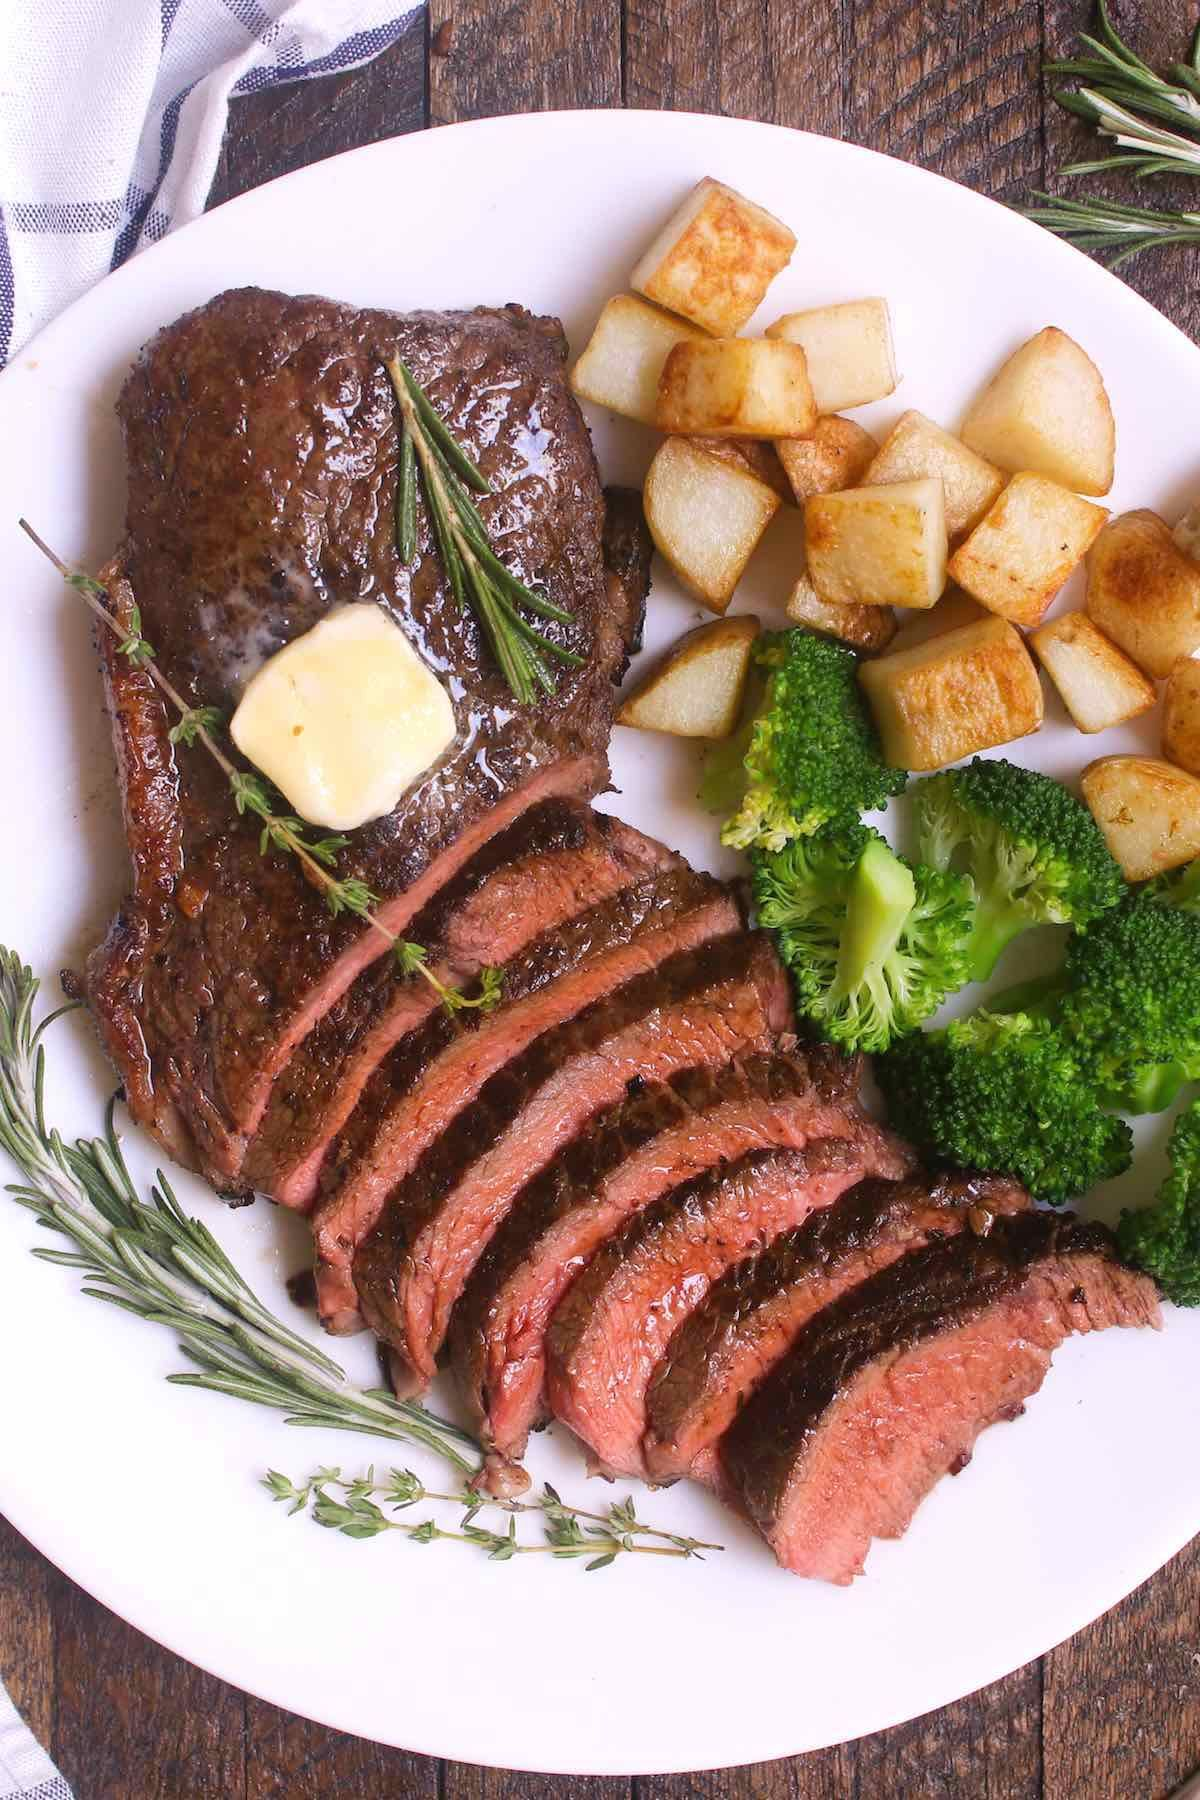 Overhead View Of A Sirloin Steak Dinner Consisting Of Sliced Top Sirloin Garnished With Fresh Rosemary Thym Steak Dinner Sirloin Steak Recipes Sirloin Recipes